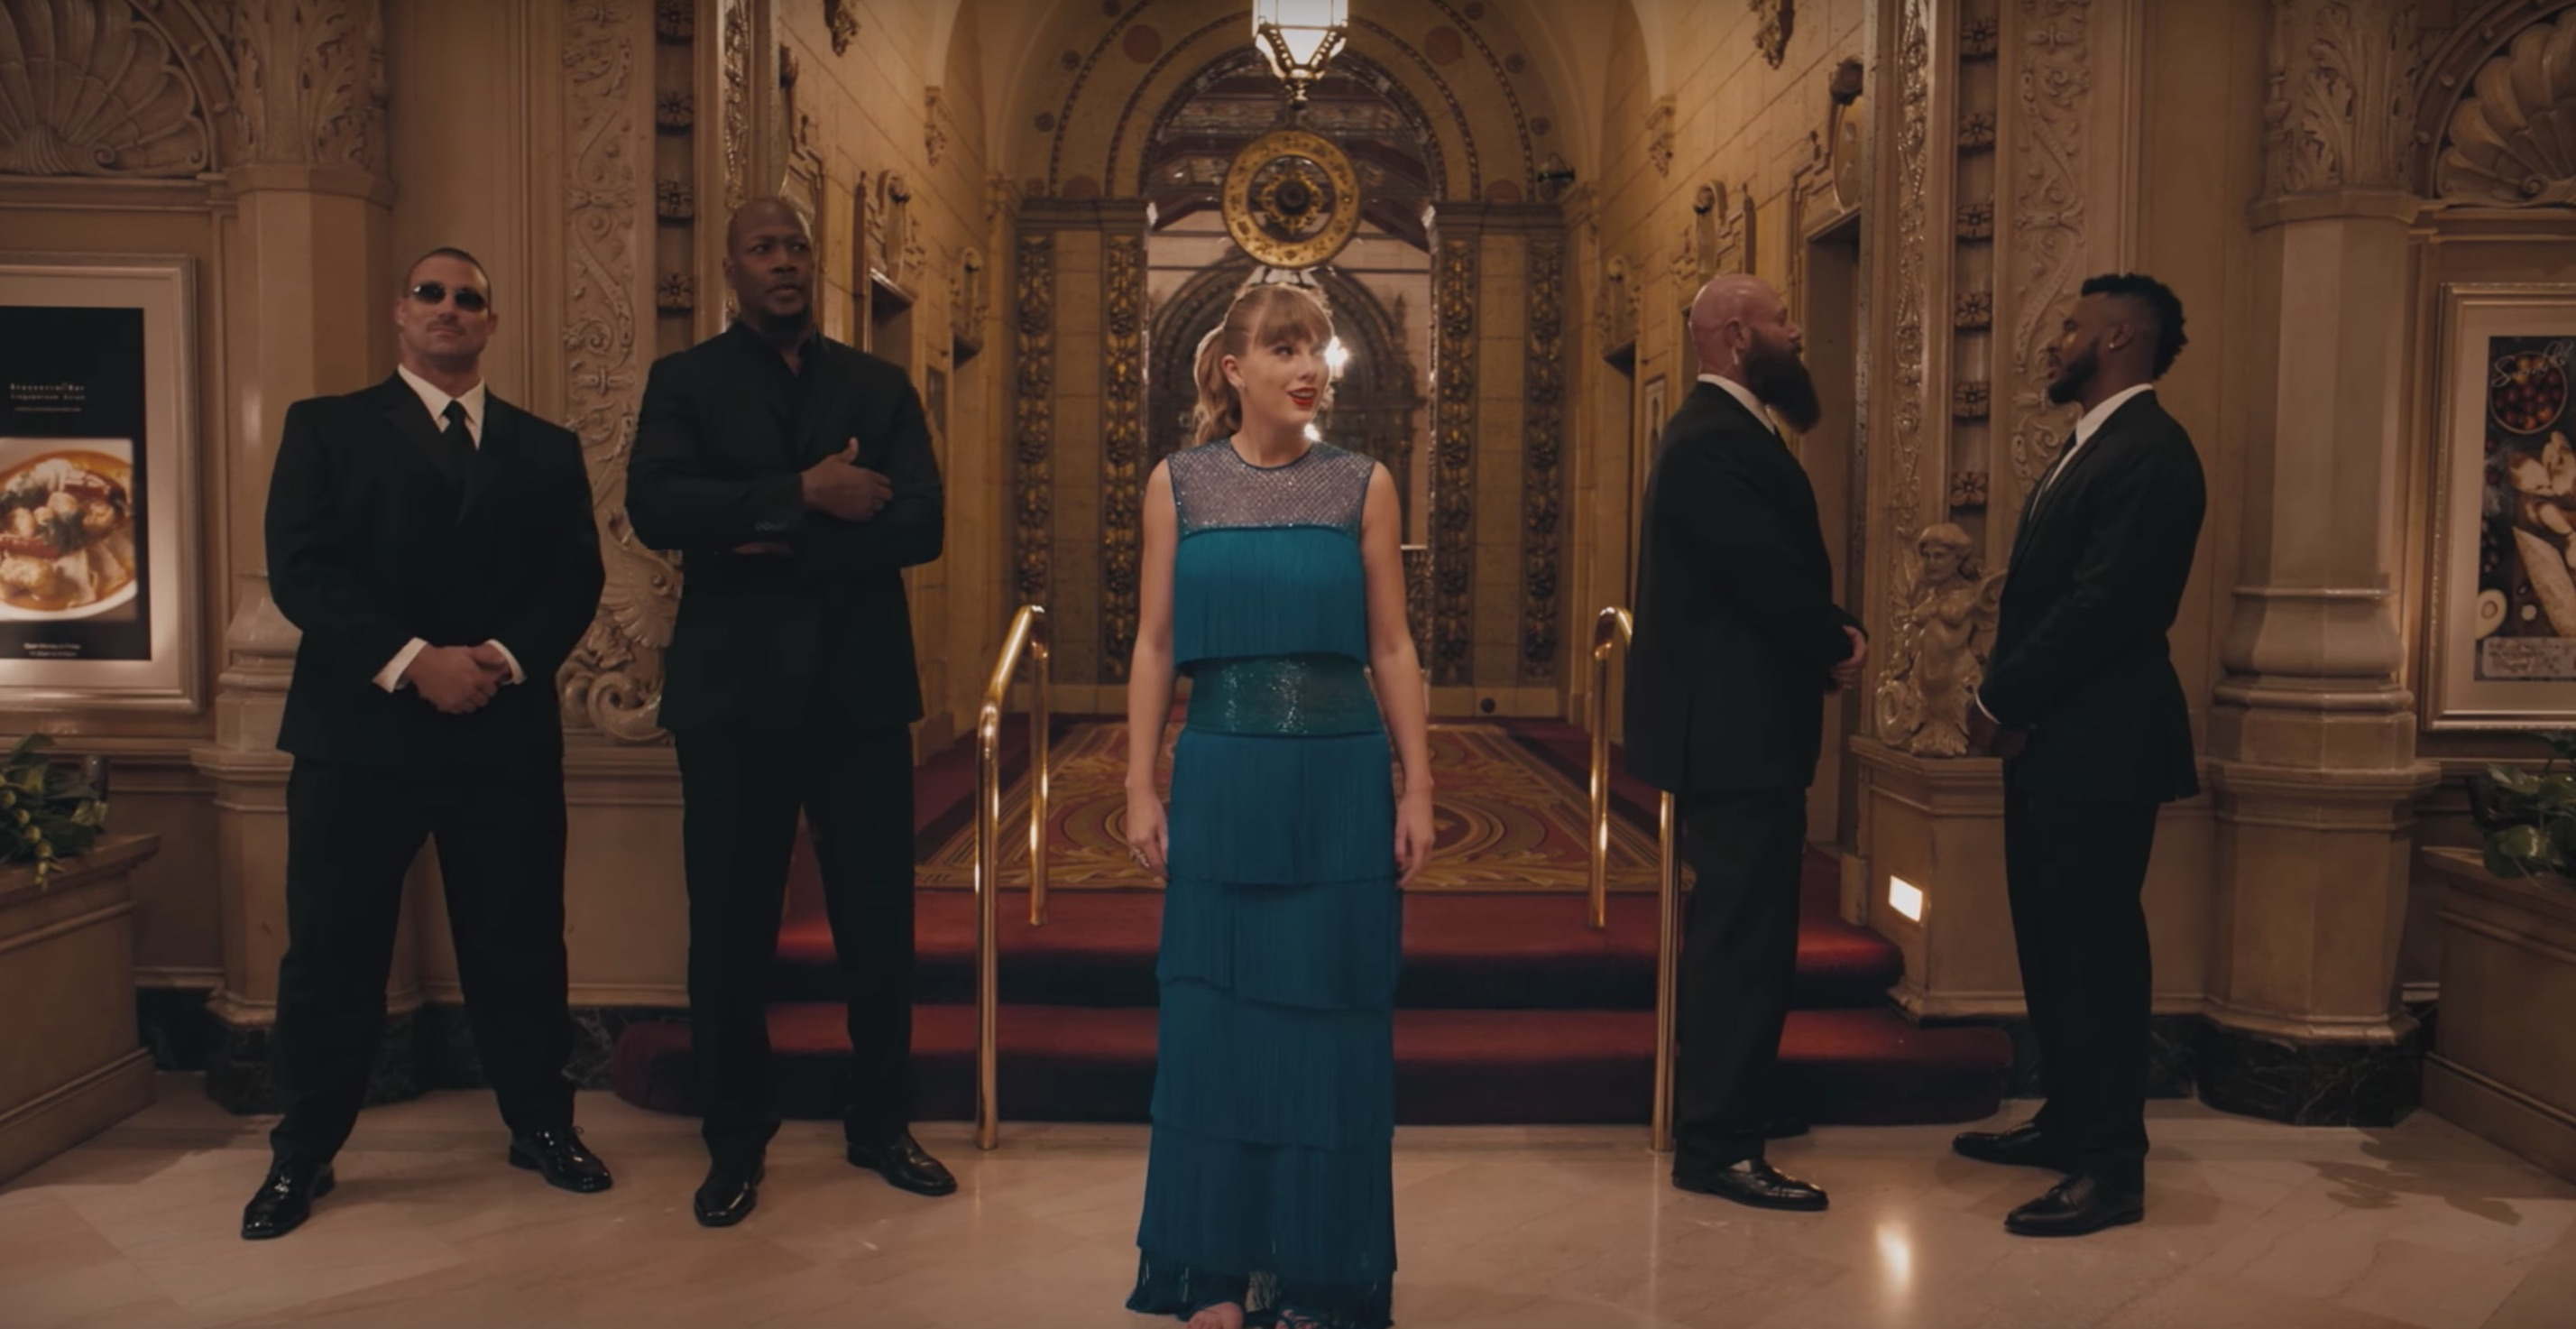 Taylor Swift releases new music video 'Delicate'